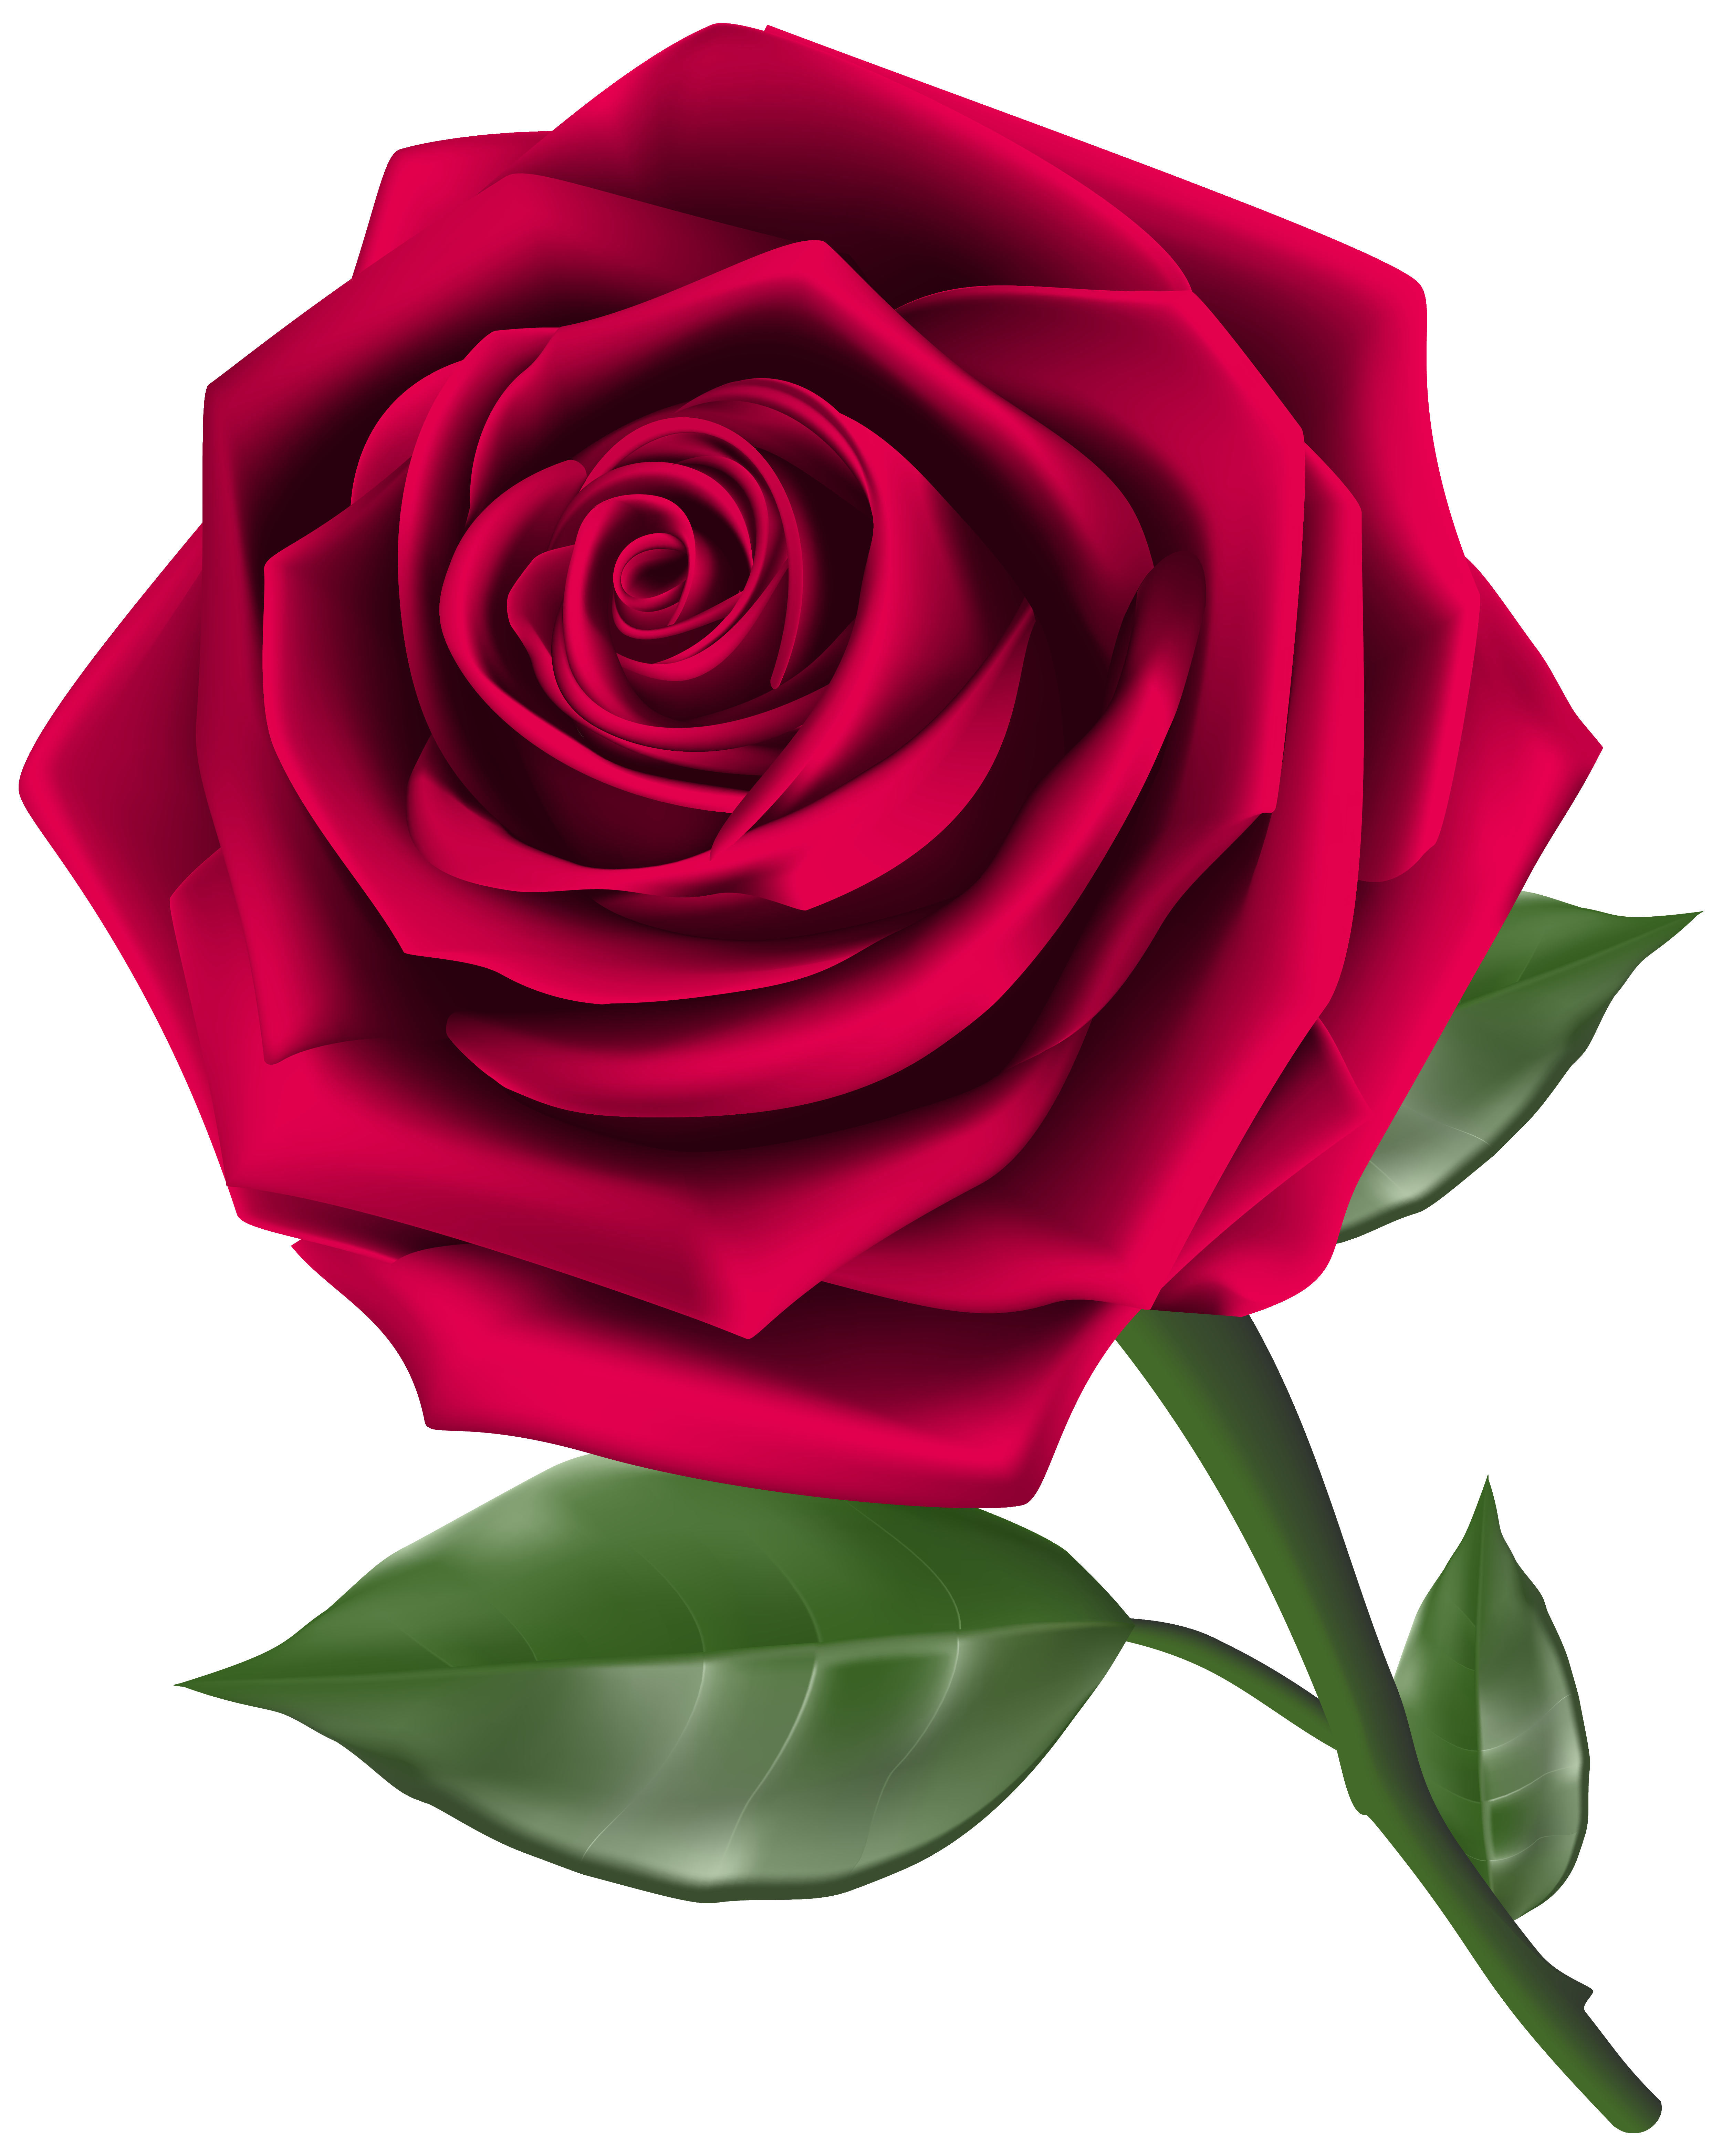 Roses Steam Rose Clipart Image-Roses steam rose clipart image-17